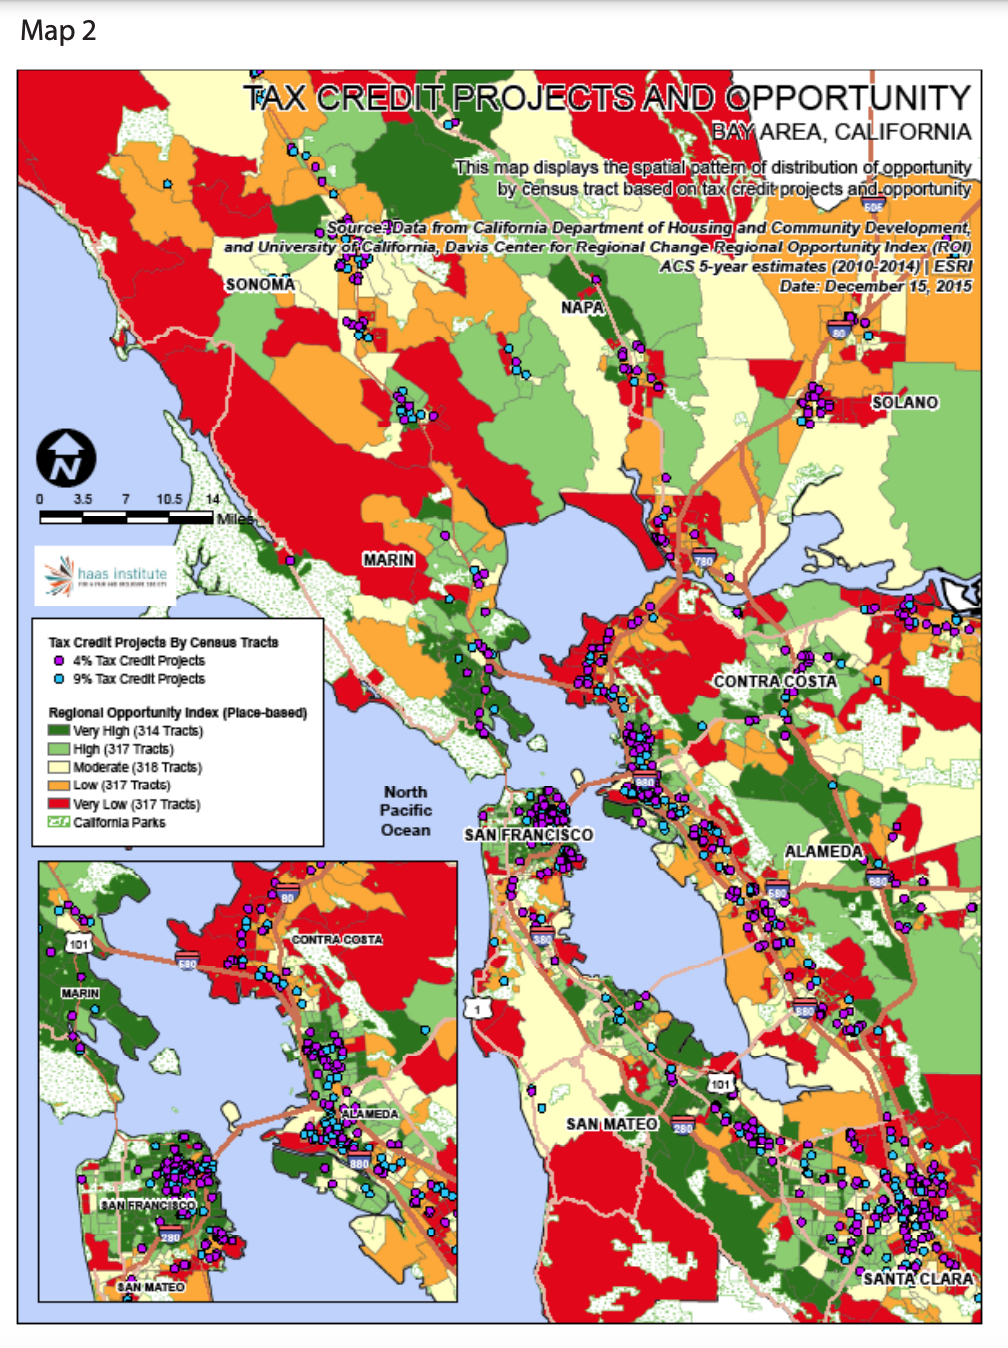 Map 2 displays the spatial pattern of distribution of opportunity by census tract based on tax credit projects and opportunity.